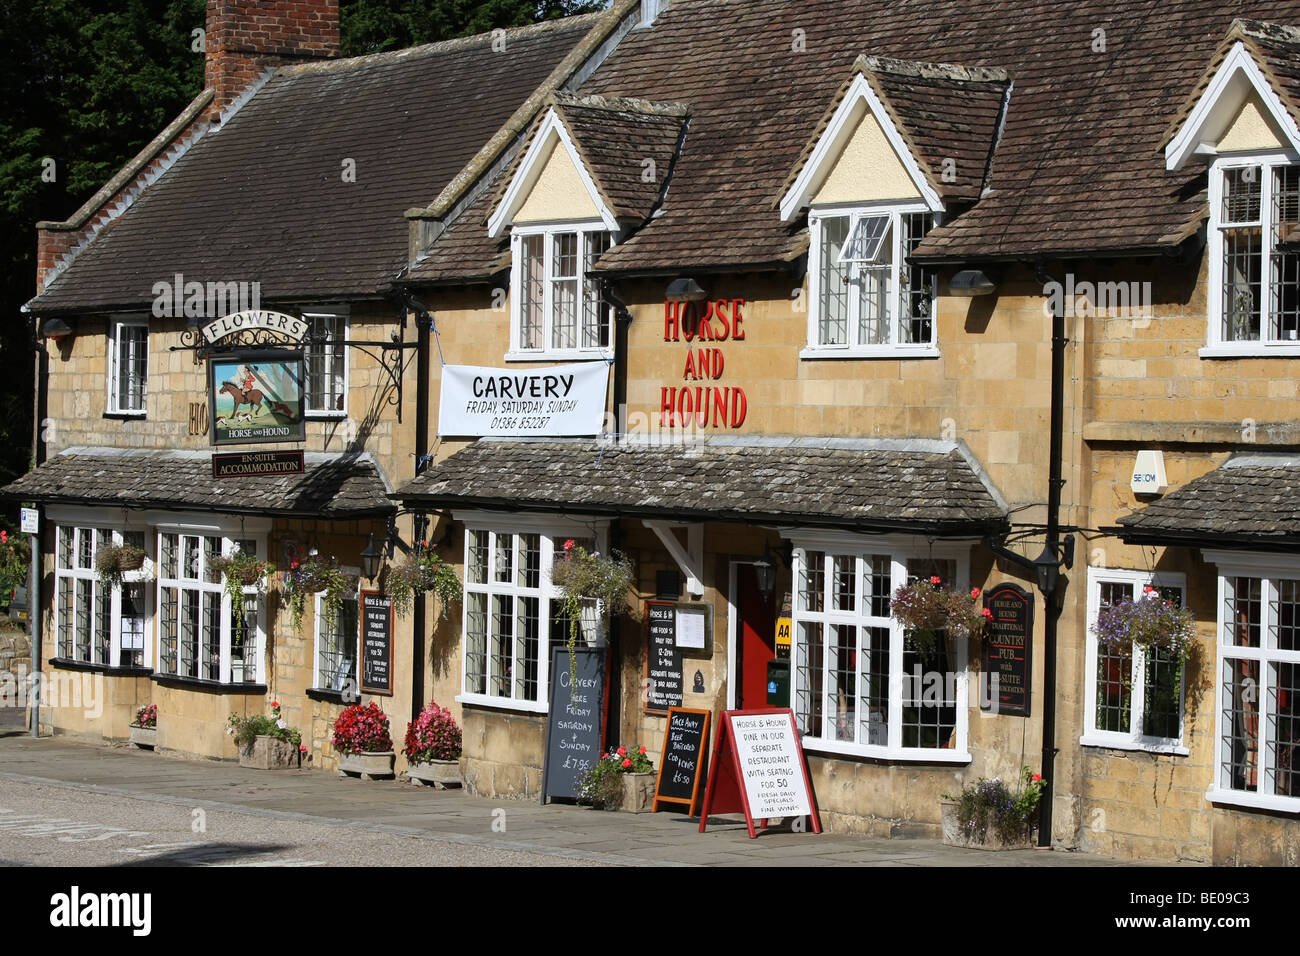 Horse and Hound public house, Angleterre Broadway Photo Stock